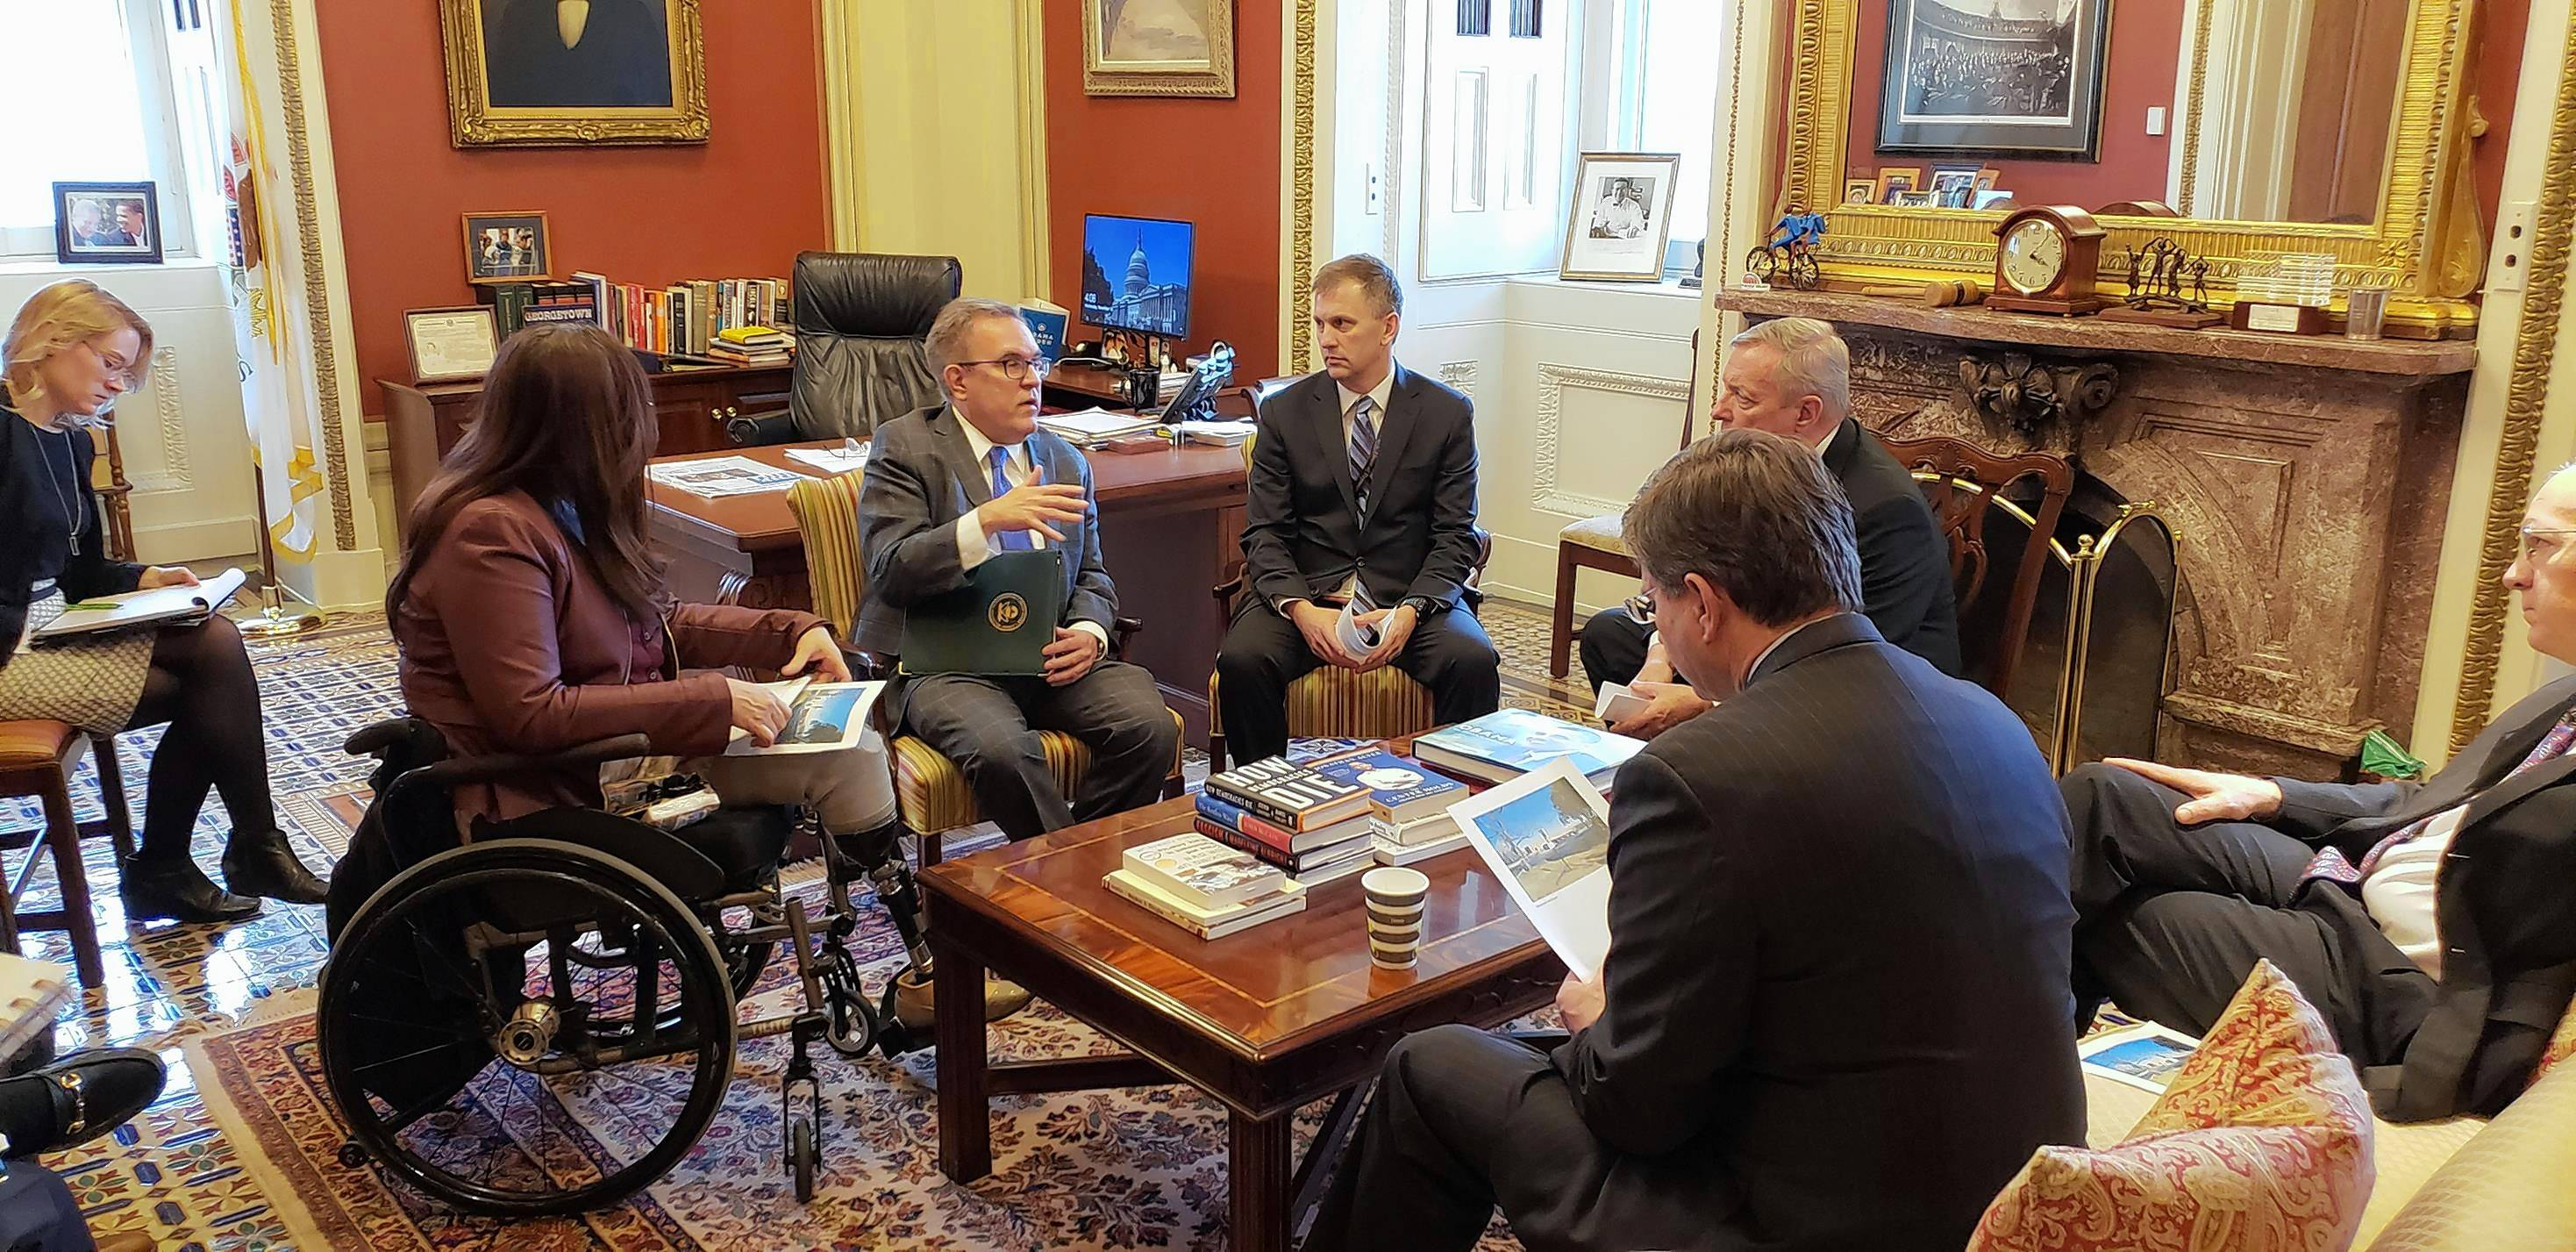 Incoming U.S. Rep. Sean Casten, center, meets with, from left, Sen. Tammy Duckworth, EPA Administrator Andrew Wheeler, Sen. Dick Durbin and Reps. Bill Foster and Brad Schneider in Washington.